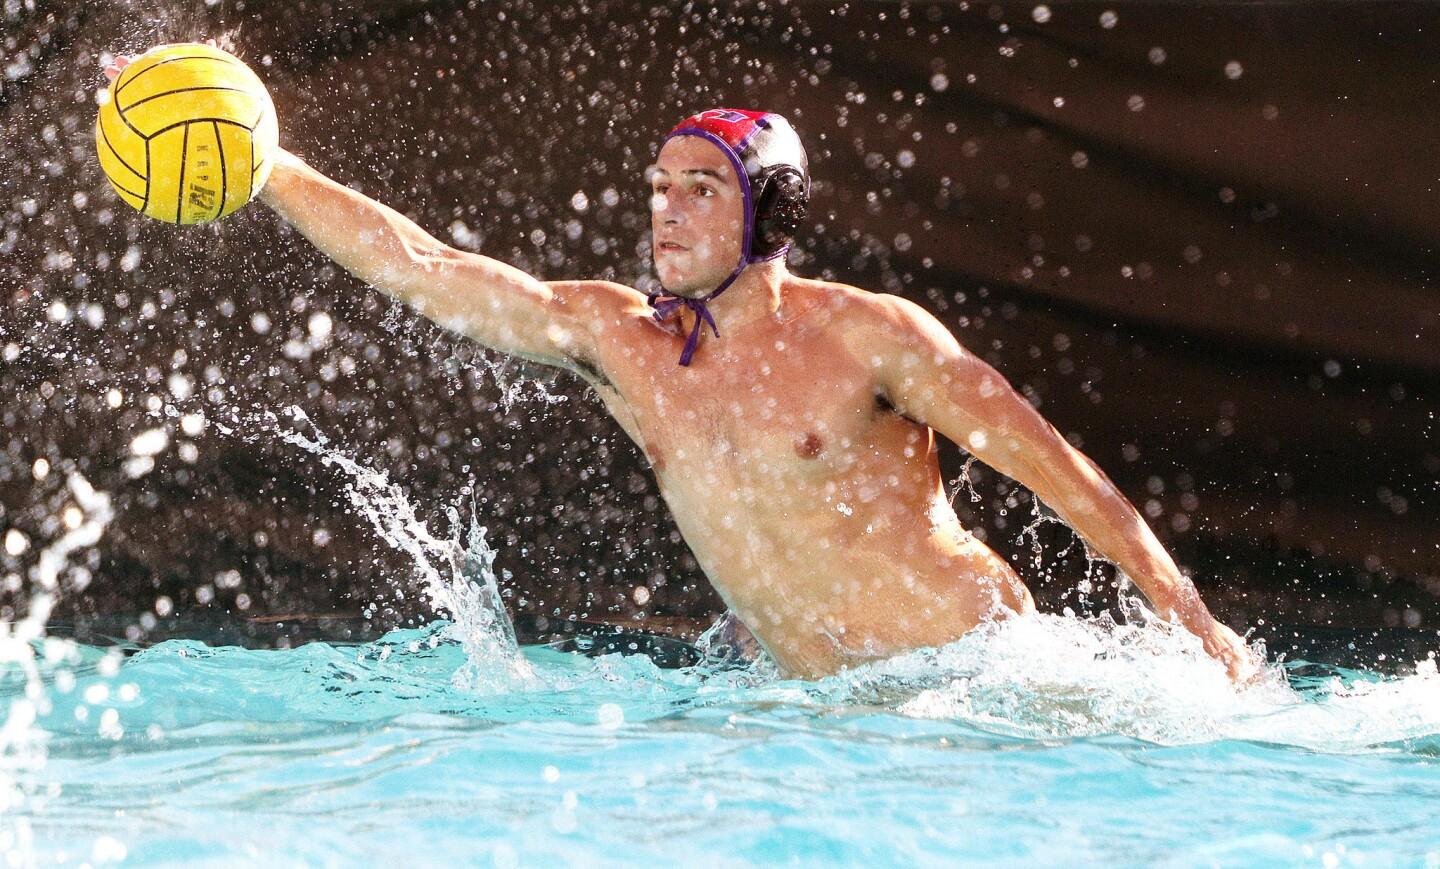 Photo Gallery: Hoover vs. Burroughs in Pacific League boys' water polo